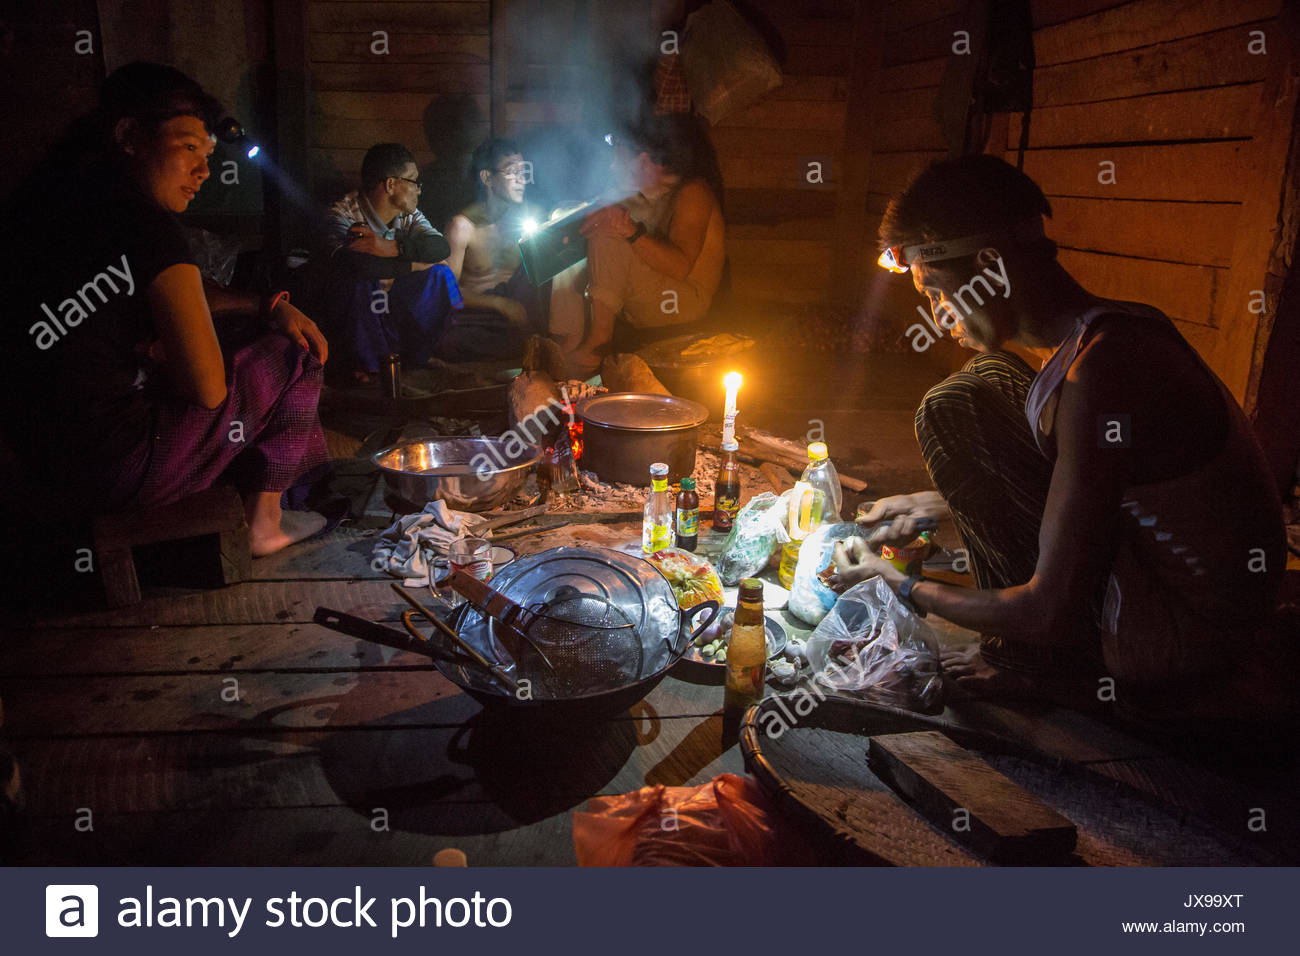 Porters prepare a meal by lamplight in a darkened cabin. - Stock Image